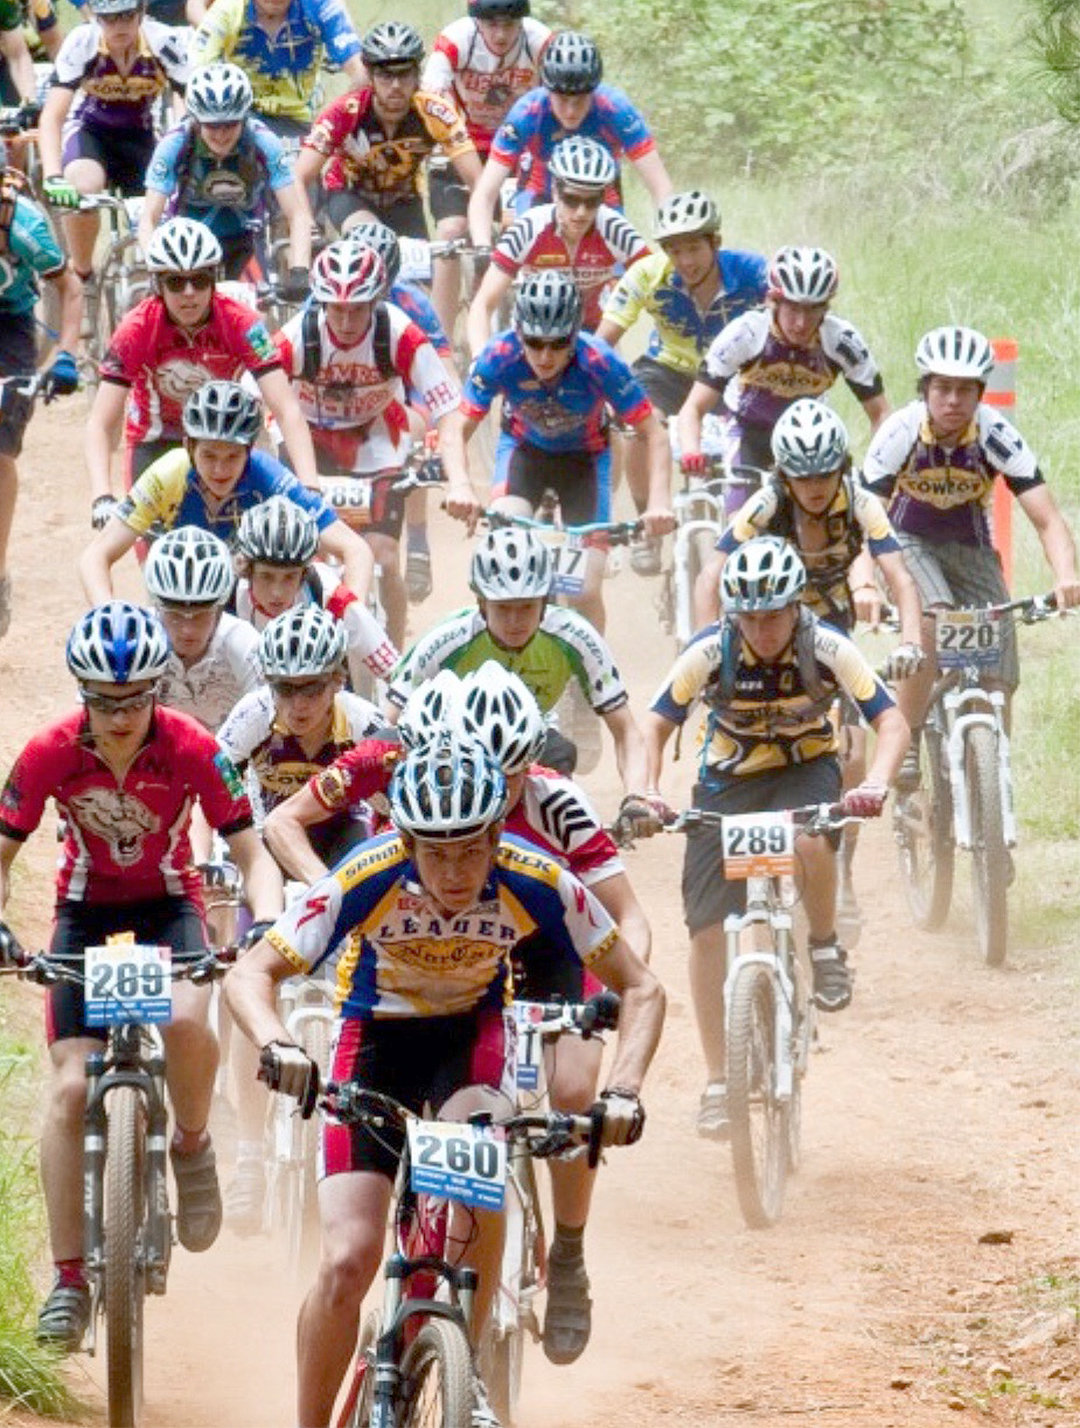 RACE ON — A typical National Interscholastic Cycling Association, race for older high school kids.